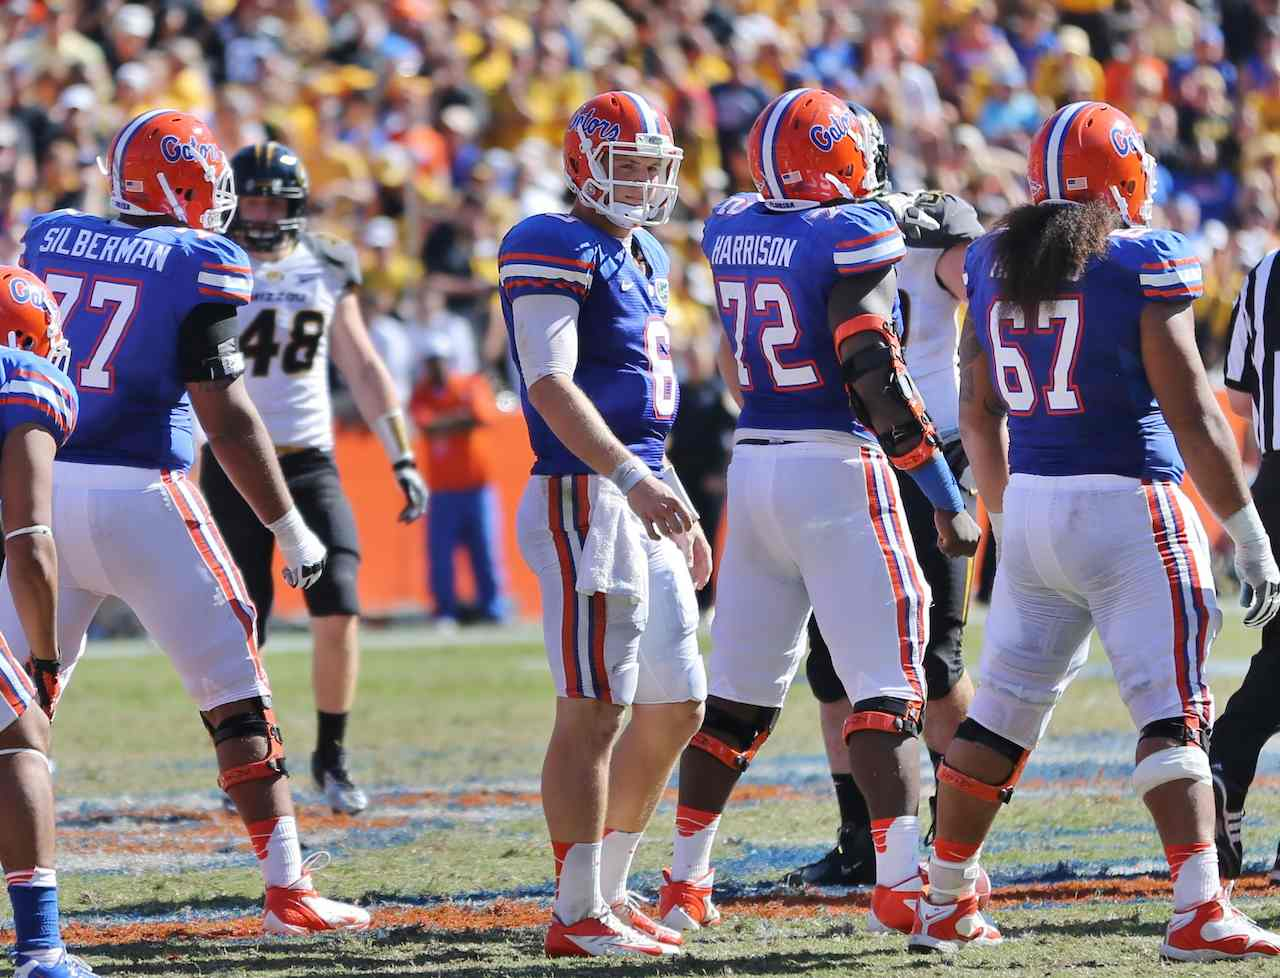 Florida Gators quarterback Jeff Driskel said a 20-18 comeback win at Texas A&M was the turning point in the season. / Gator Country photo by John Parady